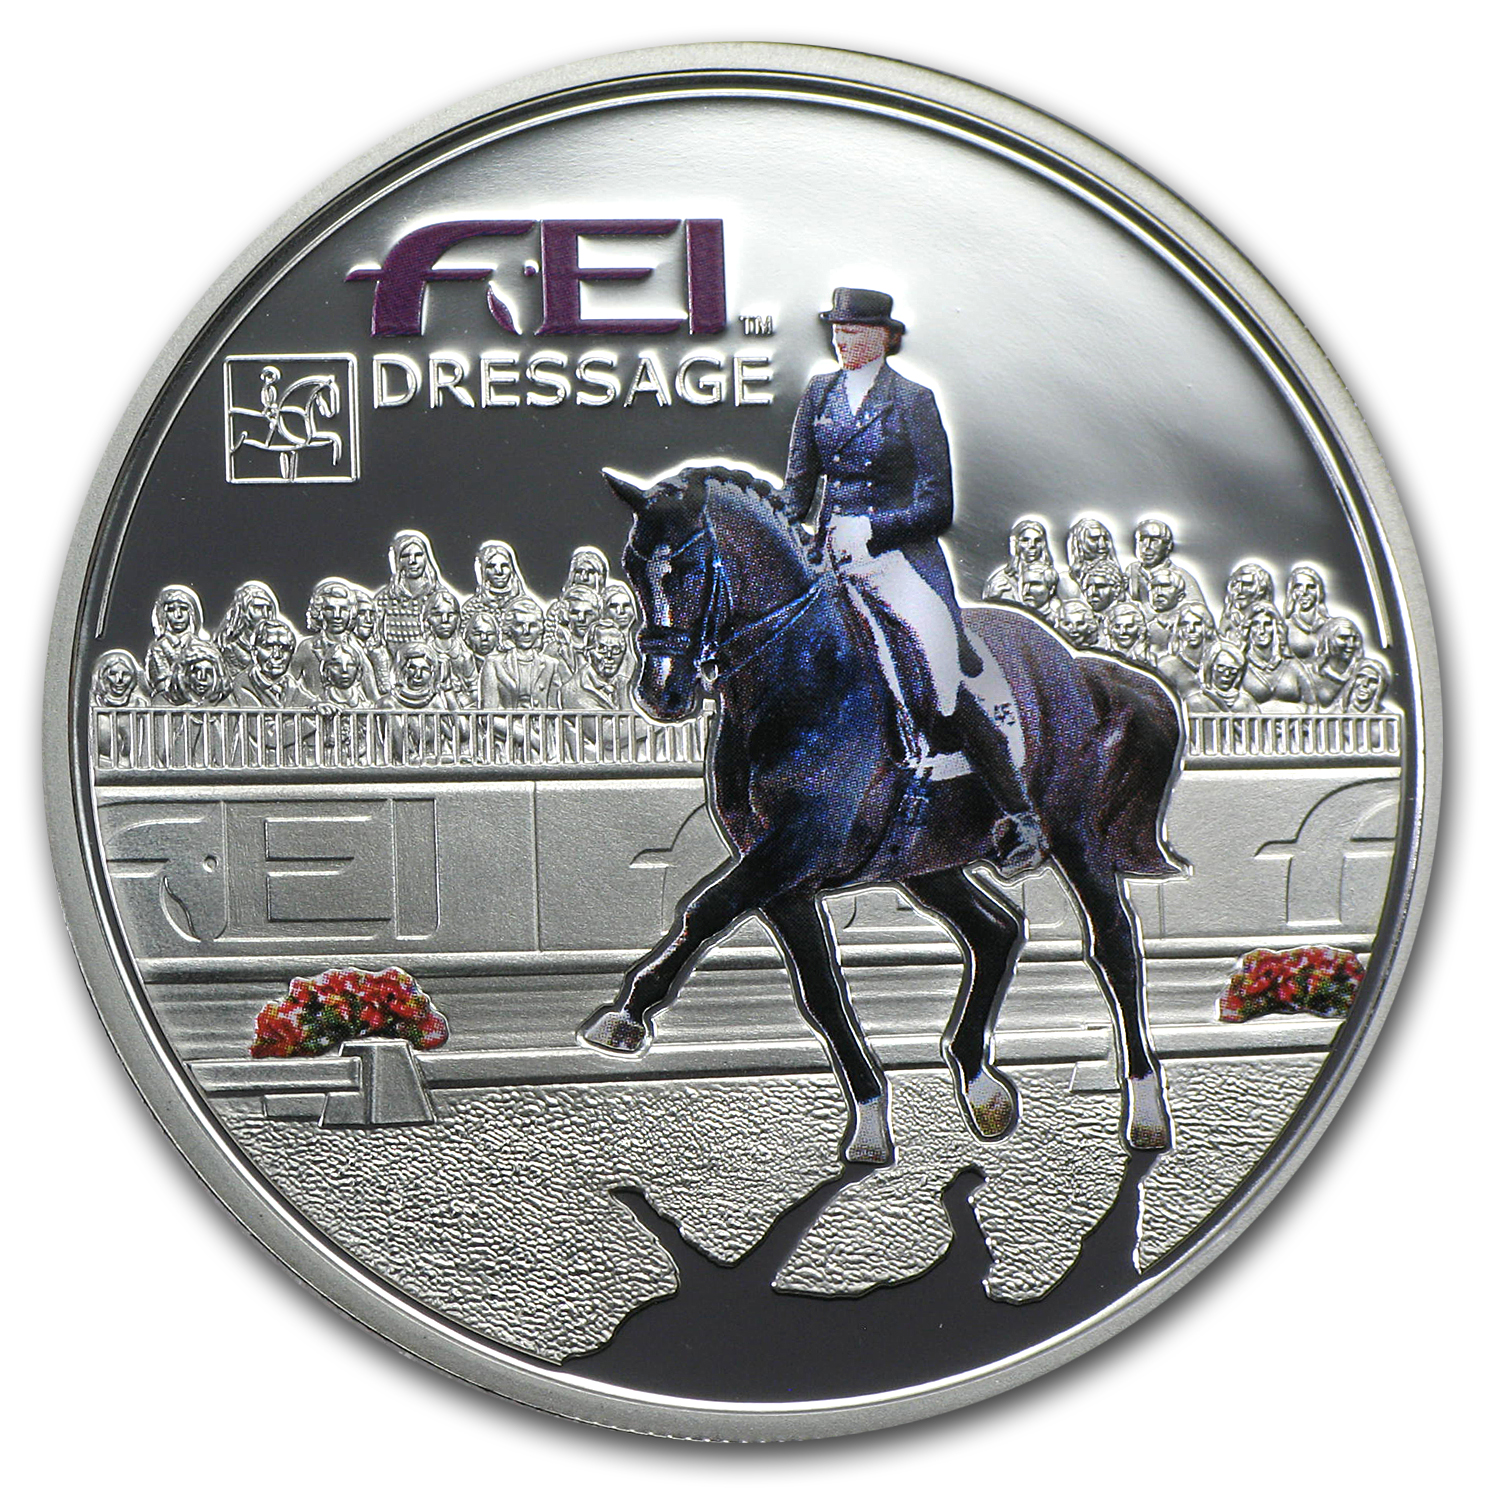 2013 Andorra Silver Fédération Equestre Internationale Dressage